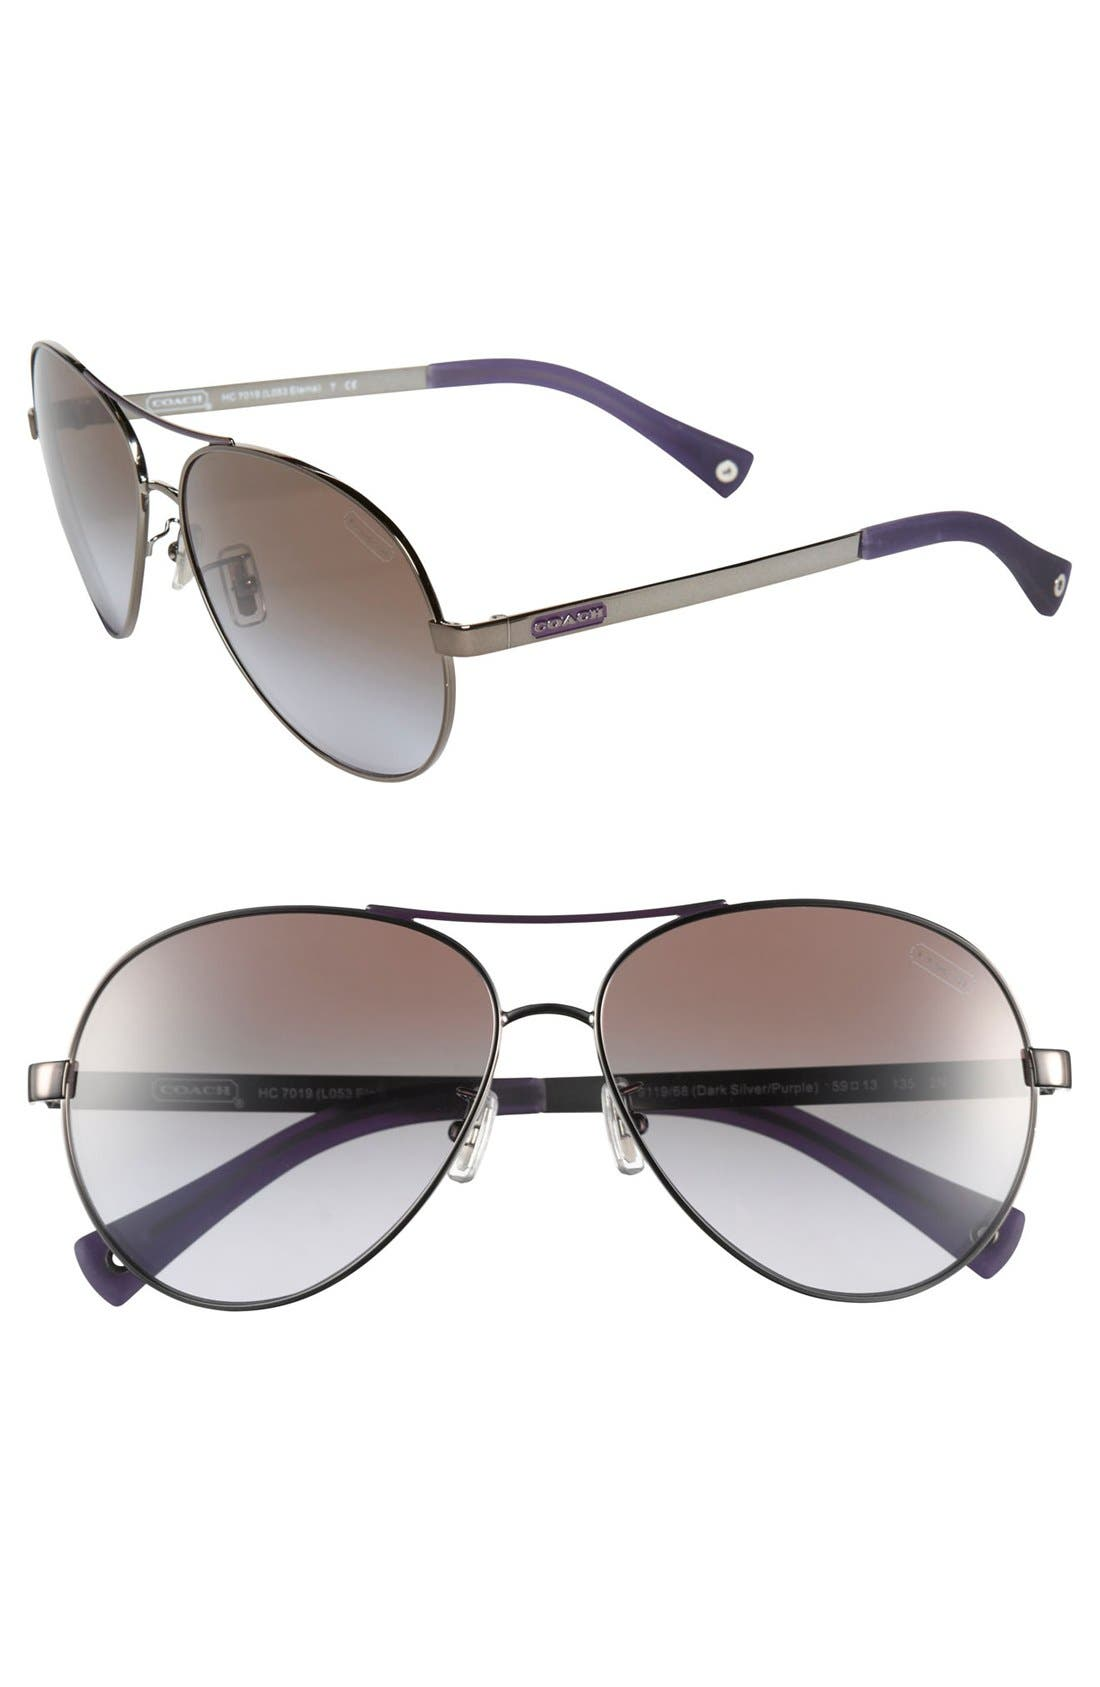 Main Image - COACH 'Elaina' 59mm Aviator Sunglasses